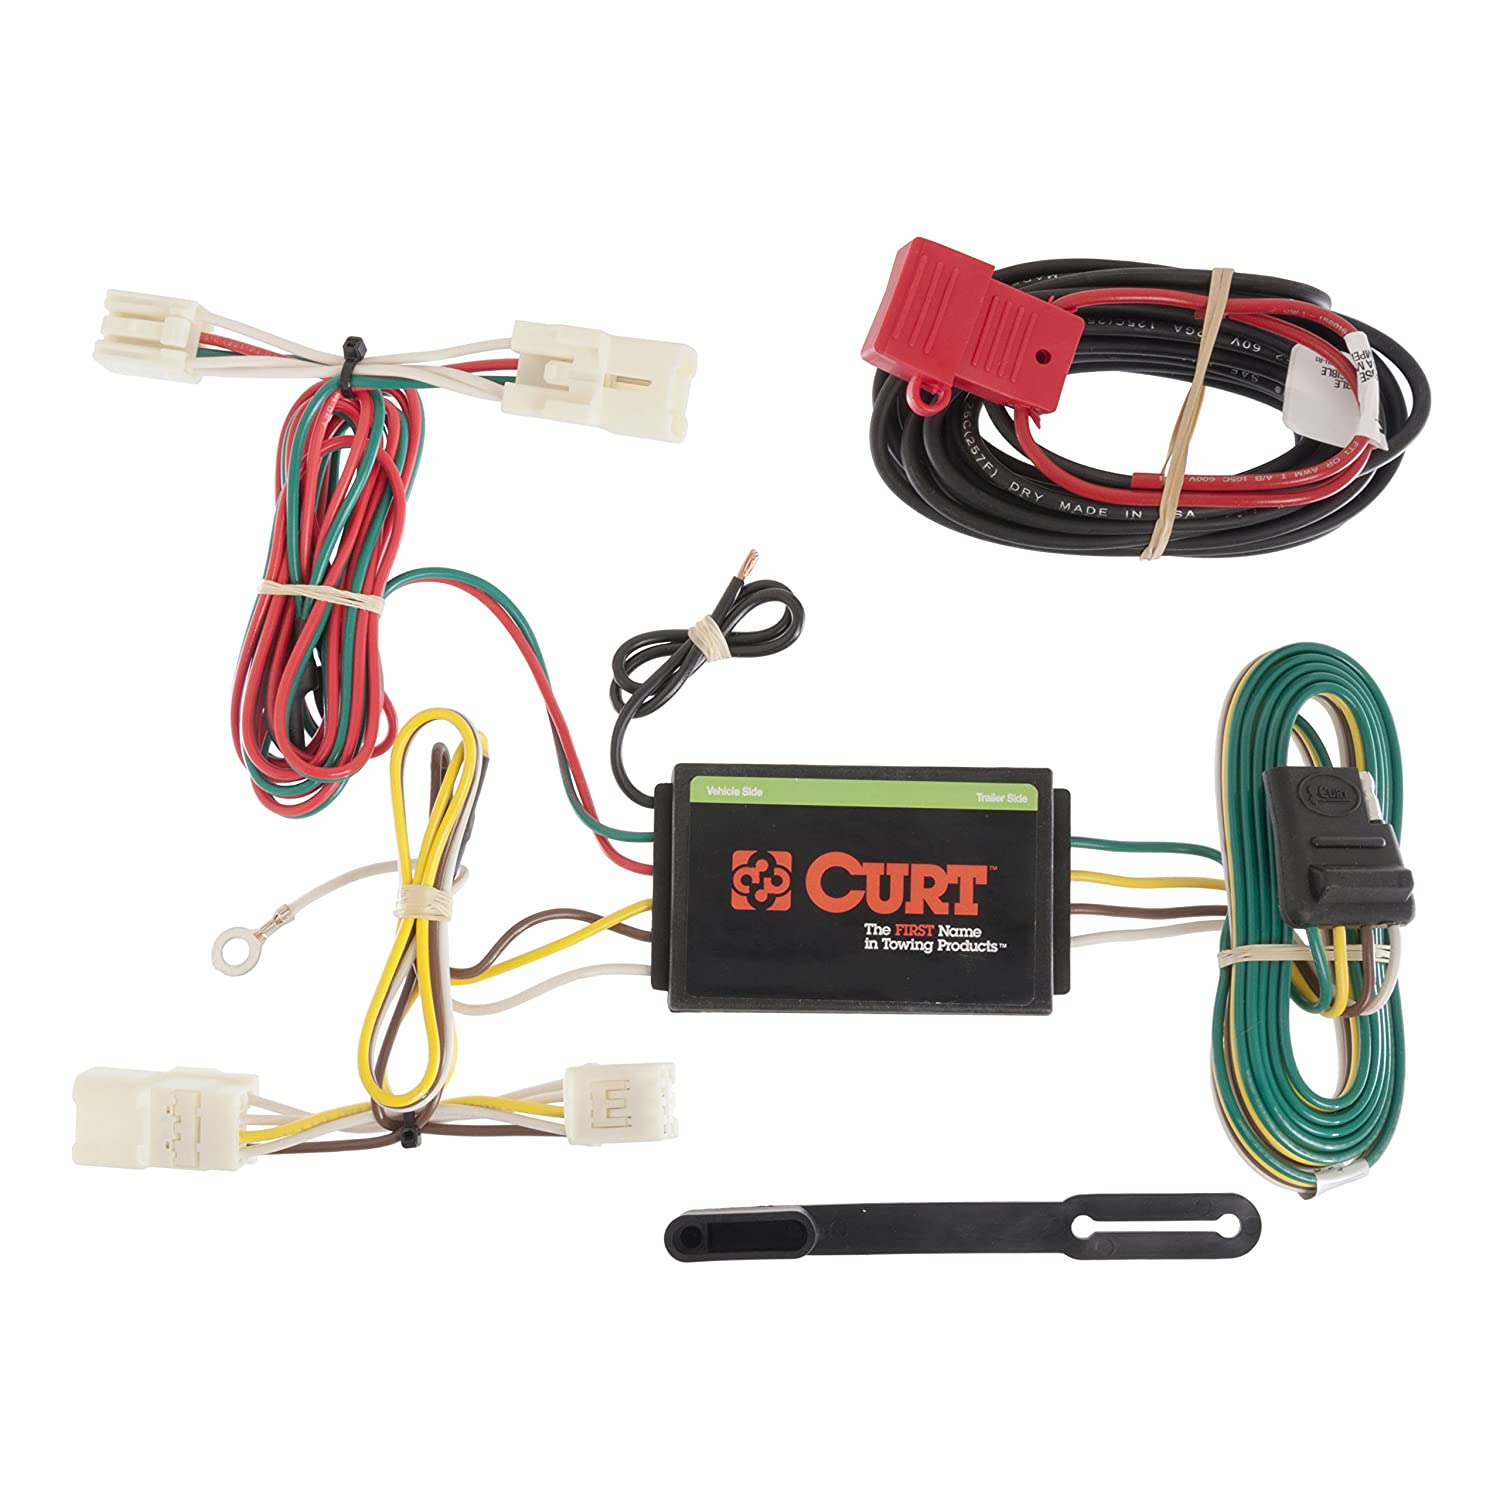 817l7jcQOtL._SL1500_ amazon com curt 56165 custom wiring harness automotive automotive wiring harness at readyjetset.co